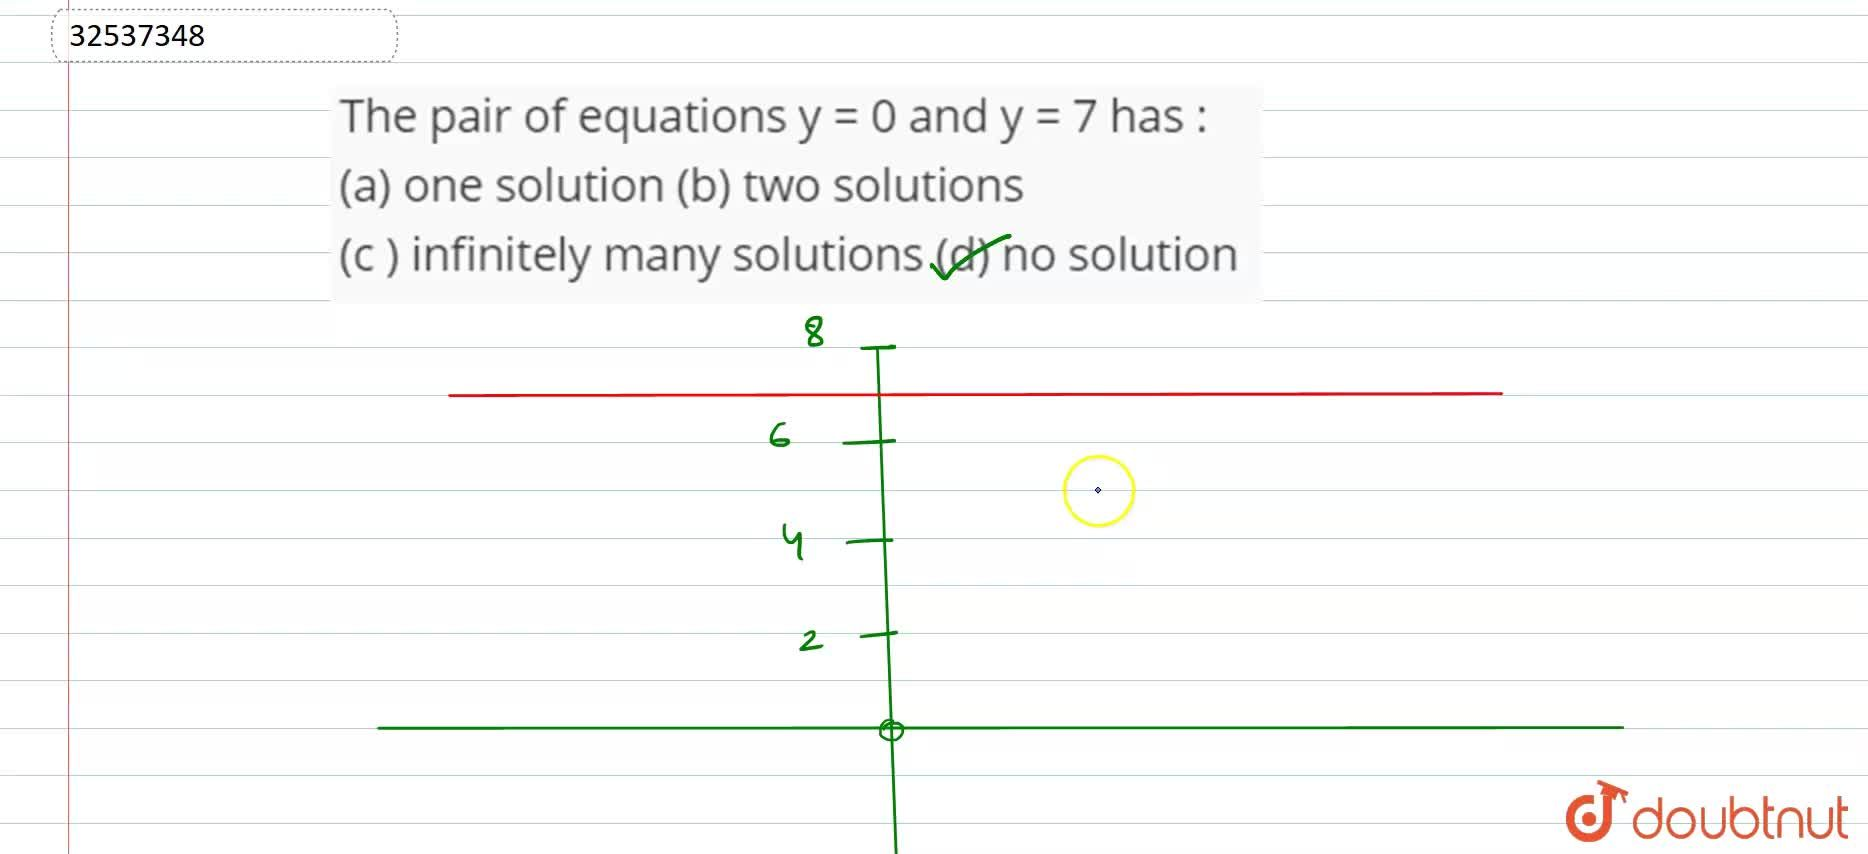 The pair of equations y = 0 and y = 7 has :   <br>  (a) one solution  (b) two solutions  <br>  (c ) infinitely many solutions  (d) no solution